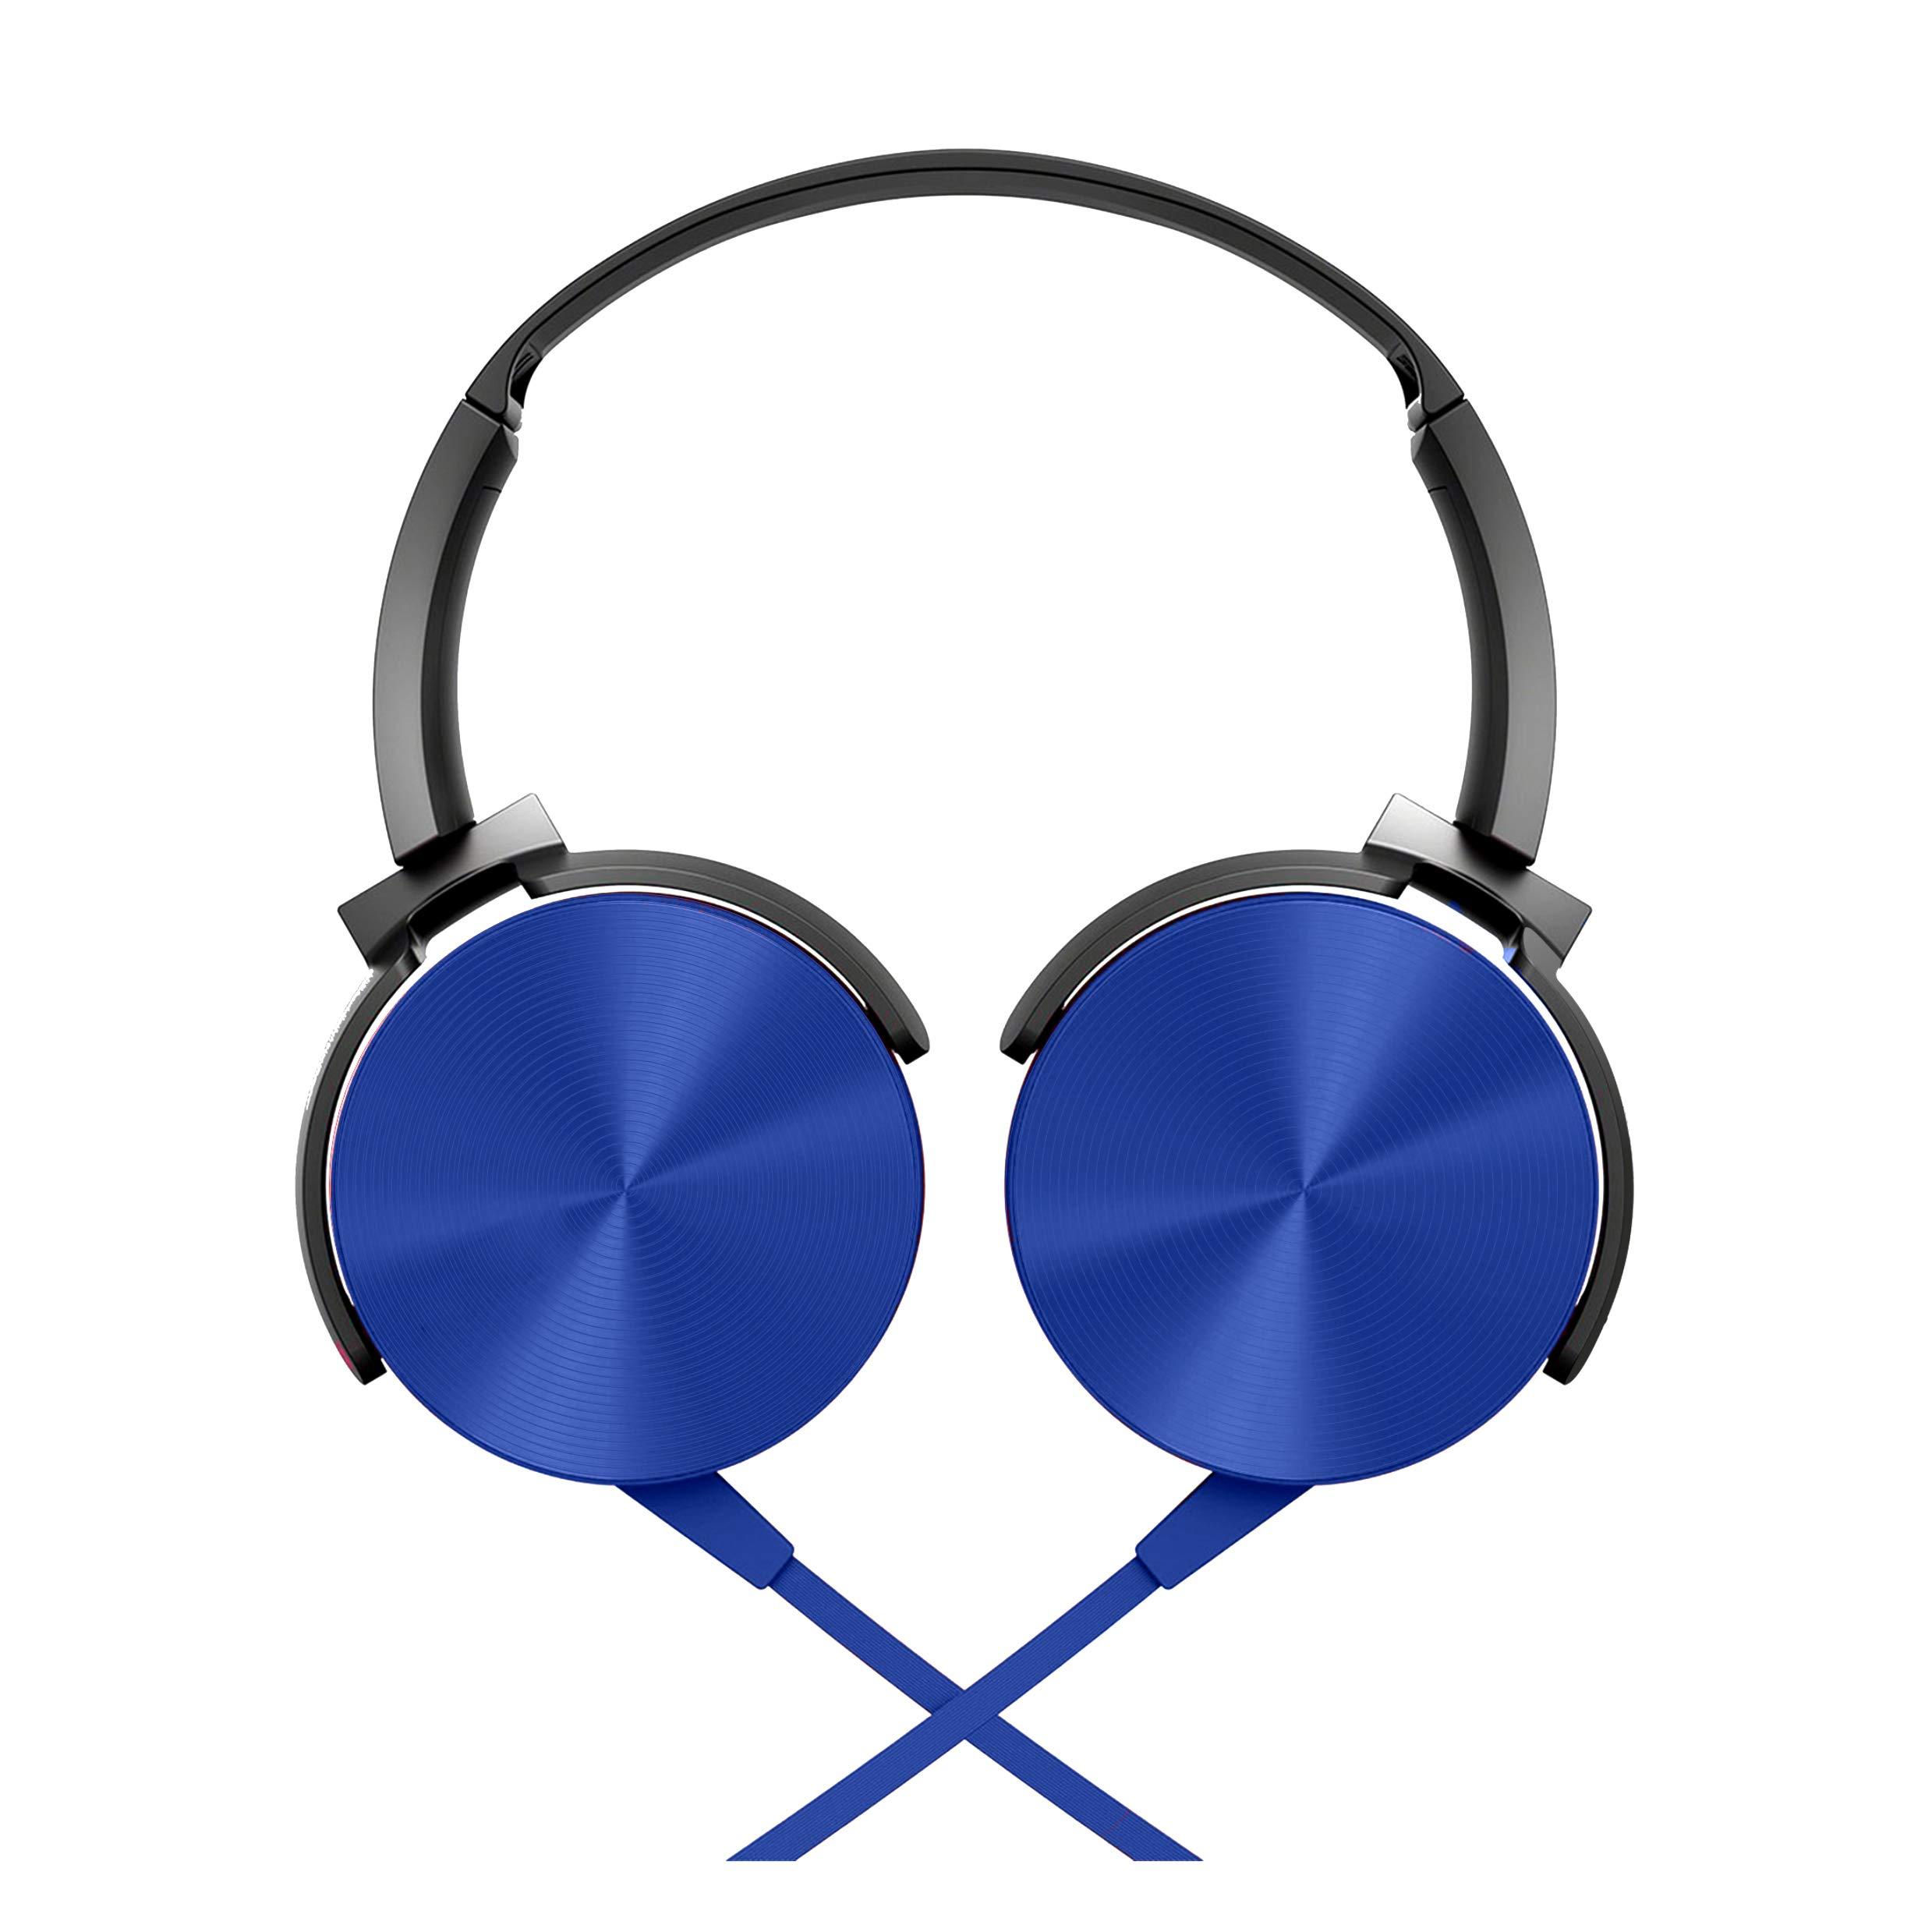 Foxin FHM-302 Wired On-Ear Stereo Headphones with Built-in Mic & Controls (Blue) (B07SHDTGZY) Amazon Price History, Amazon Price Tracker